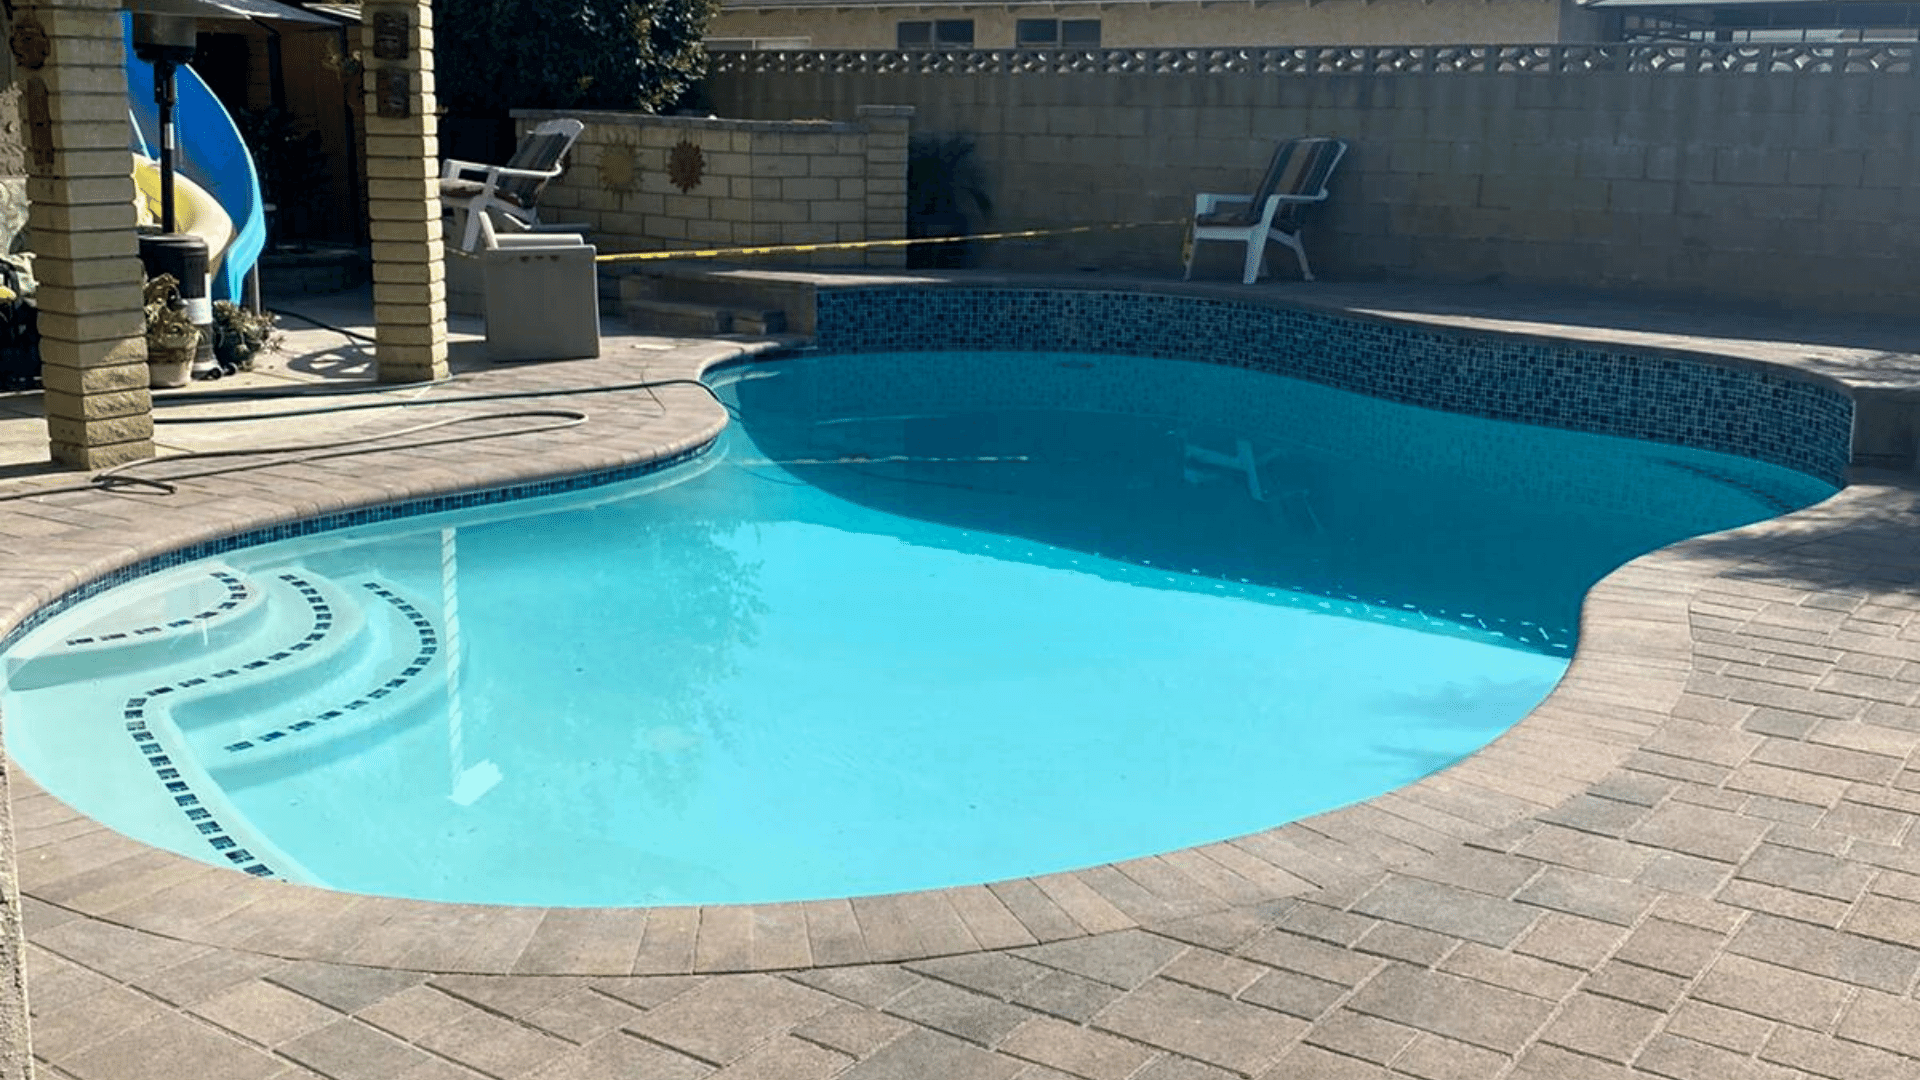 Pool Remodeling Smith ave Chino, CA 1 (1)